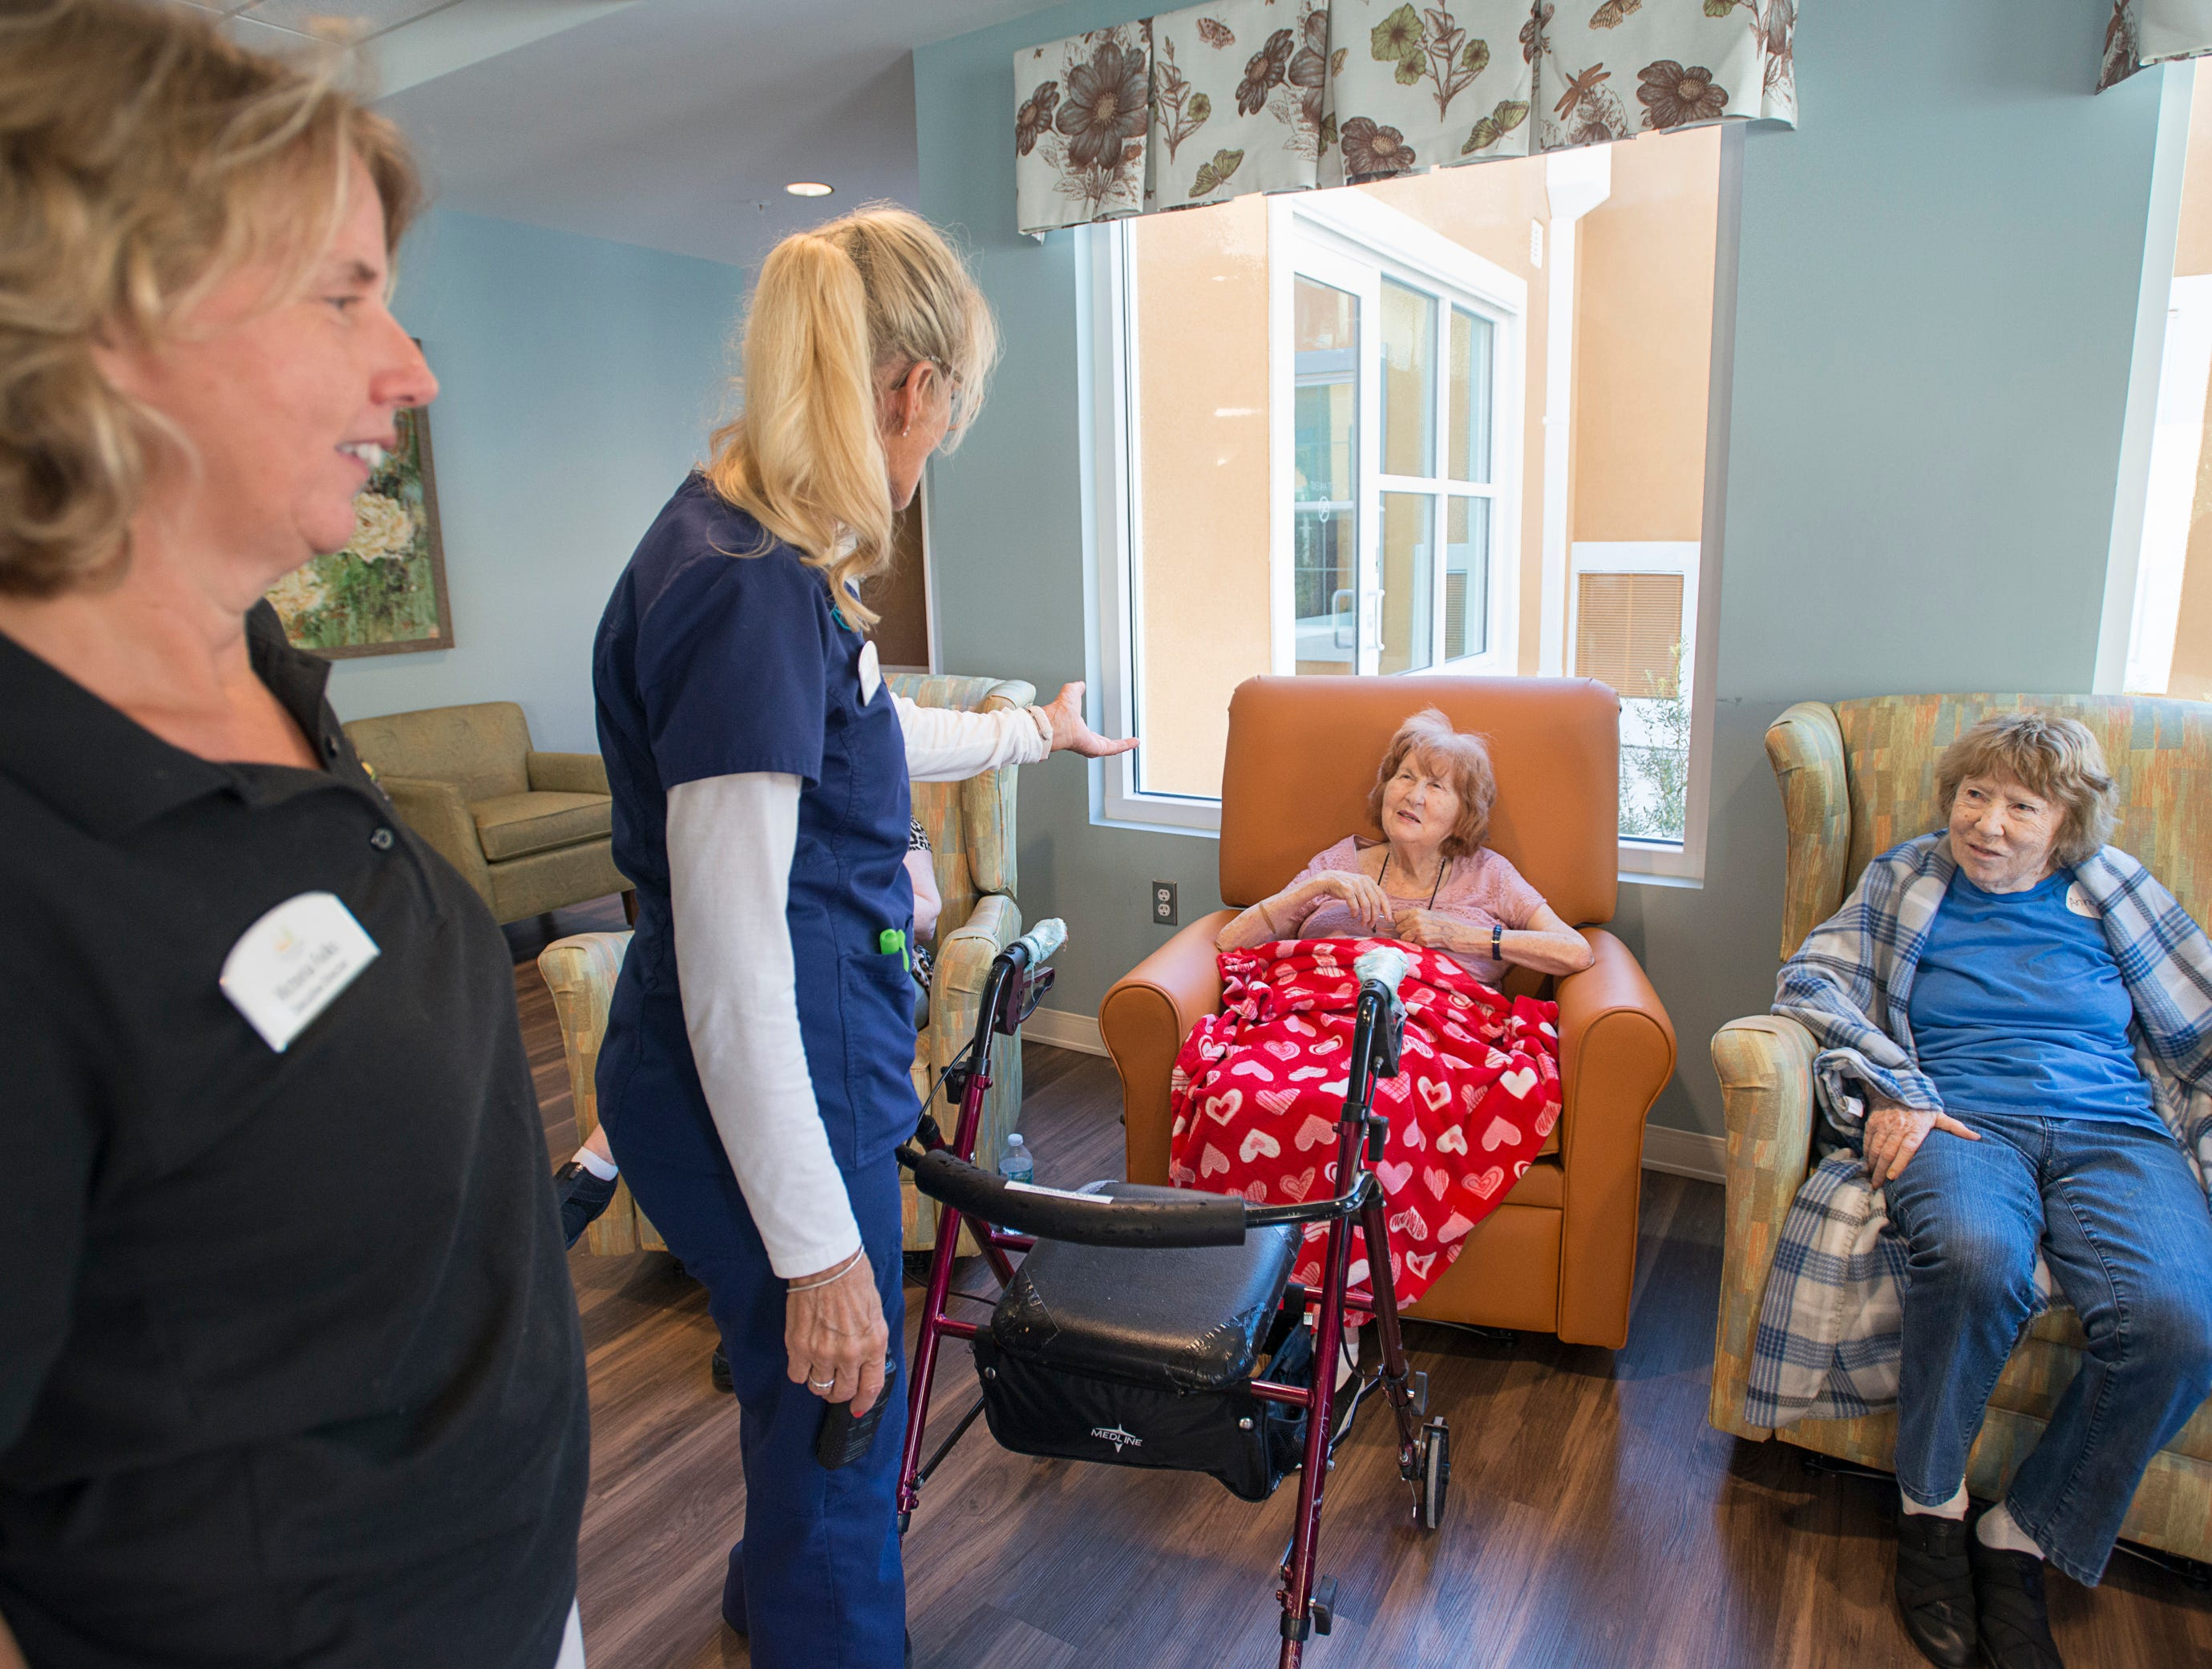 Executive director Victoria Folks, left, and nurse Linda Cooper chat with their Seagrass Village of Panama City Beach residents Ann Kernan, right, and Una O'Connor as they temporarily stay at The Arbors in Gulf Breeze on Thursday, October 11, 2018.  Seagrass residents and staff were evacuated ahead of the storm to this sister community in Gulf Breeze.  Cooper hasn't been able to contact anyone back in Panama City and still doesn't know the fate of her home.